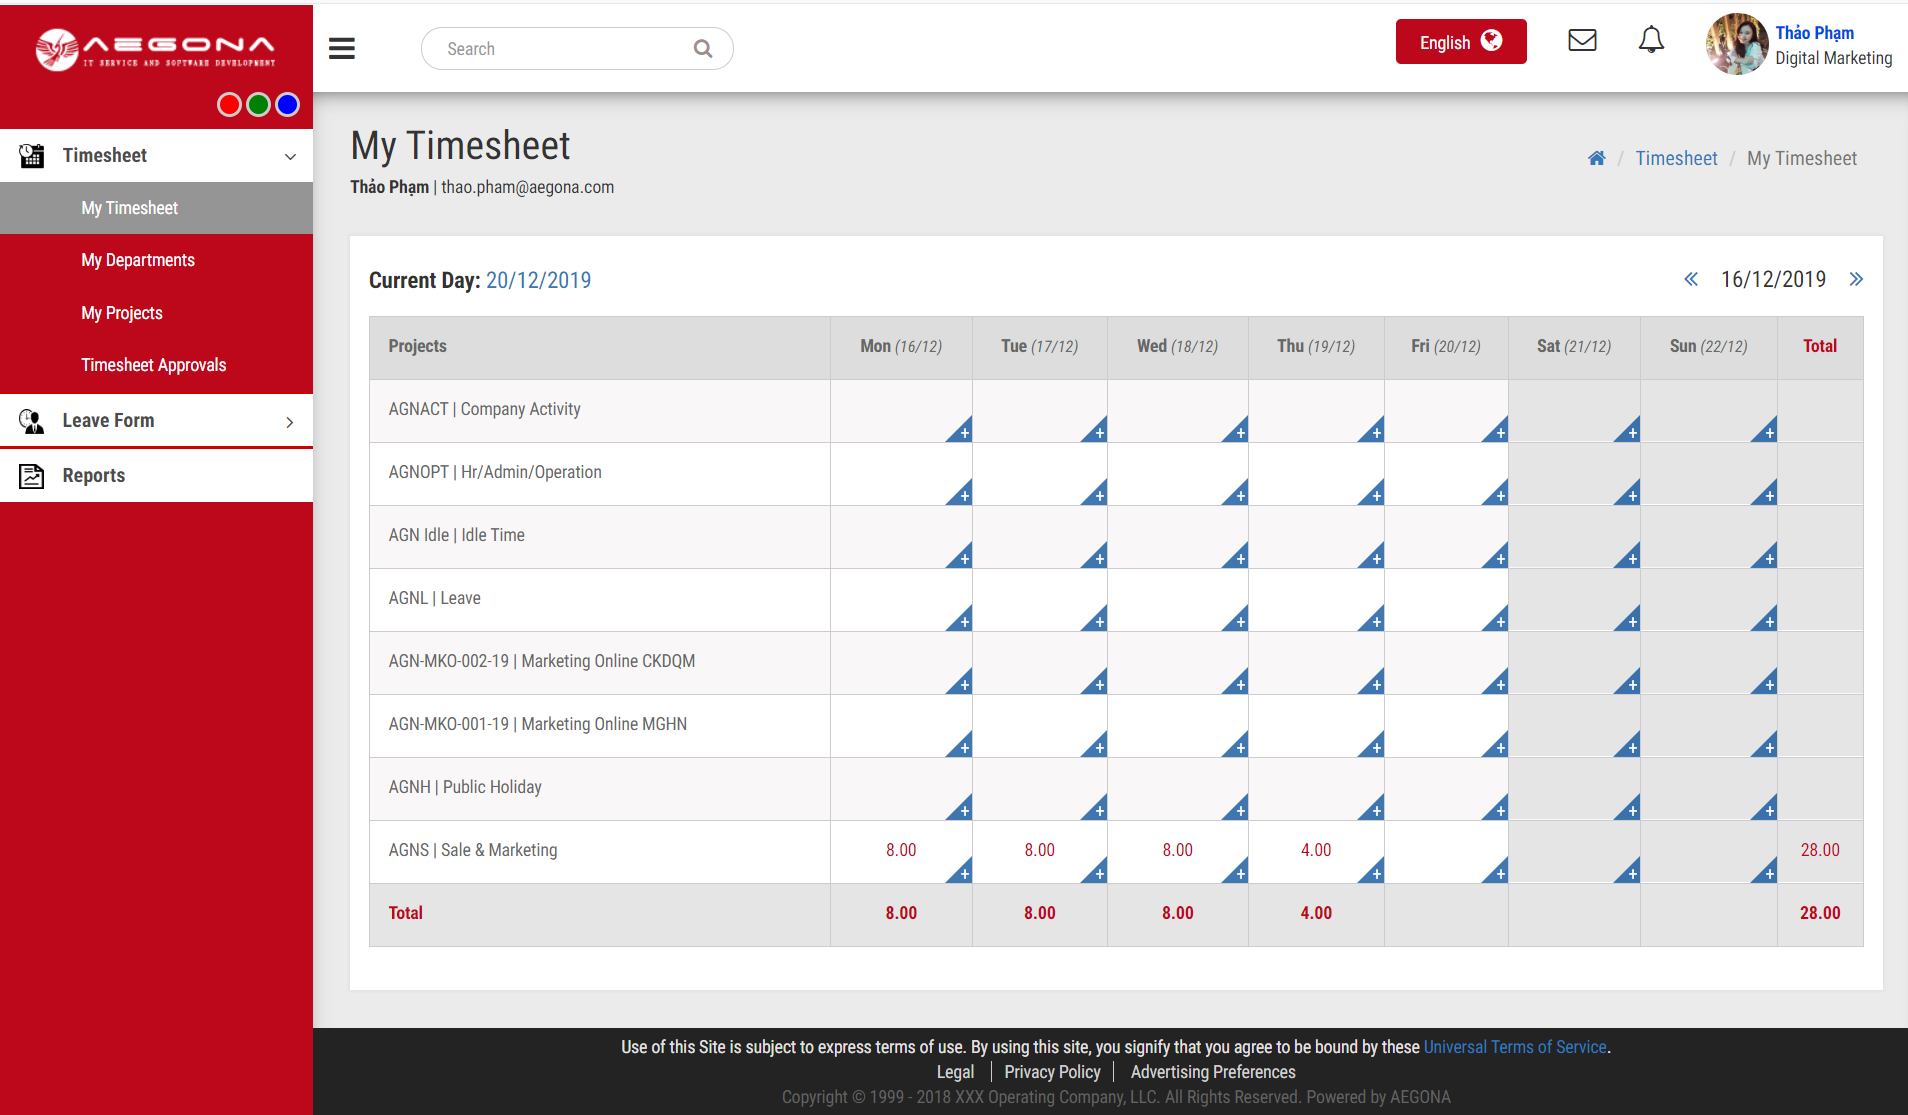 Example of a web application about Timesheet software